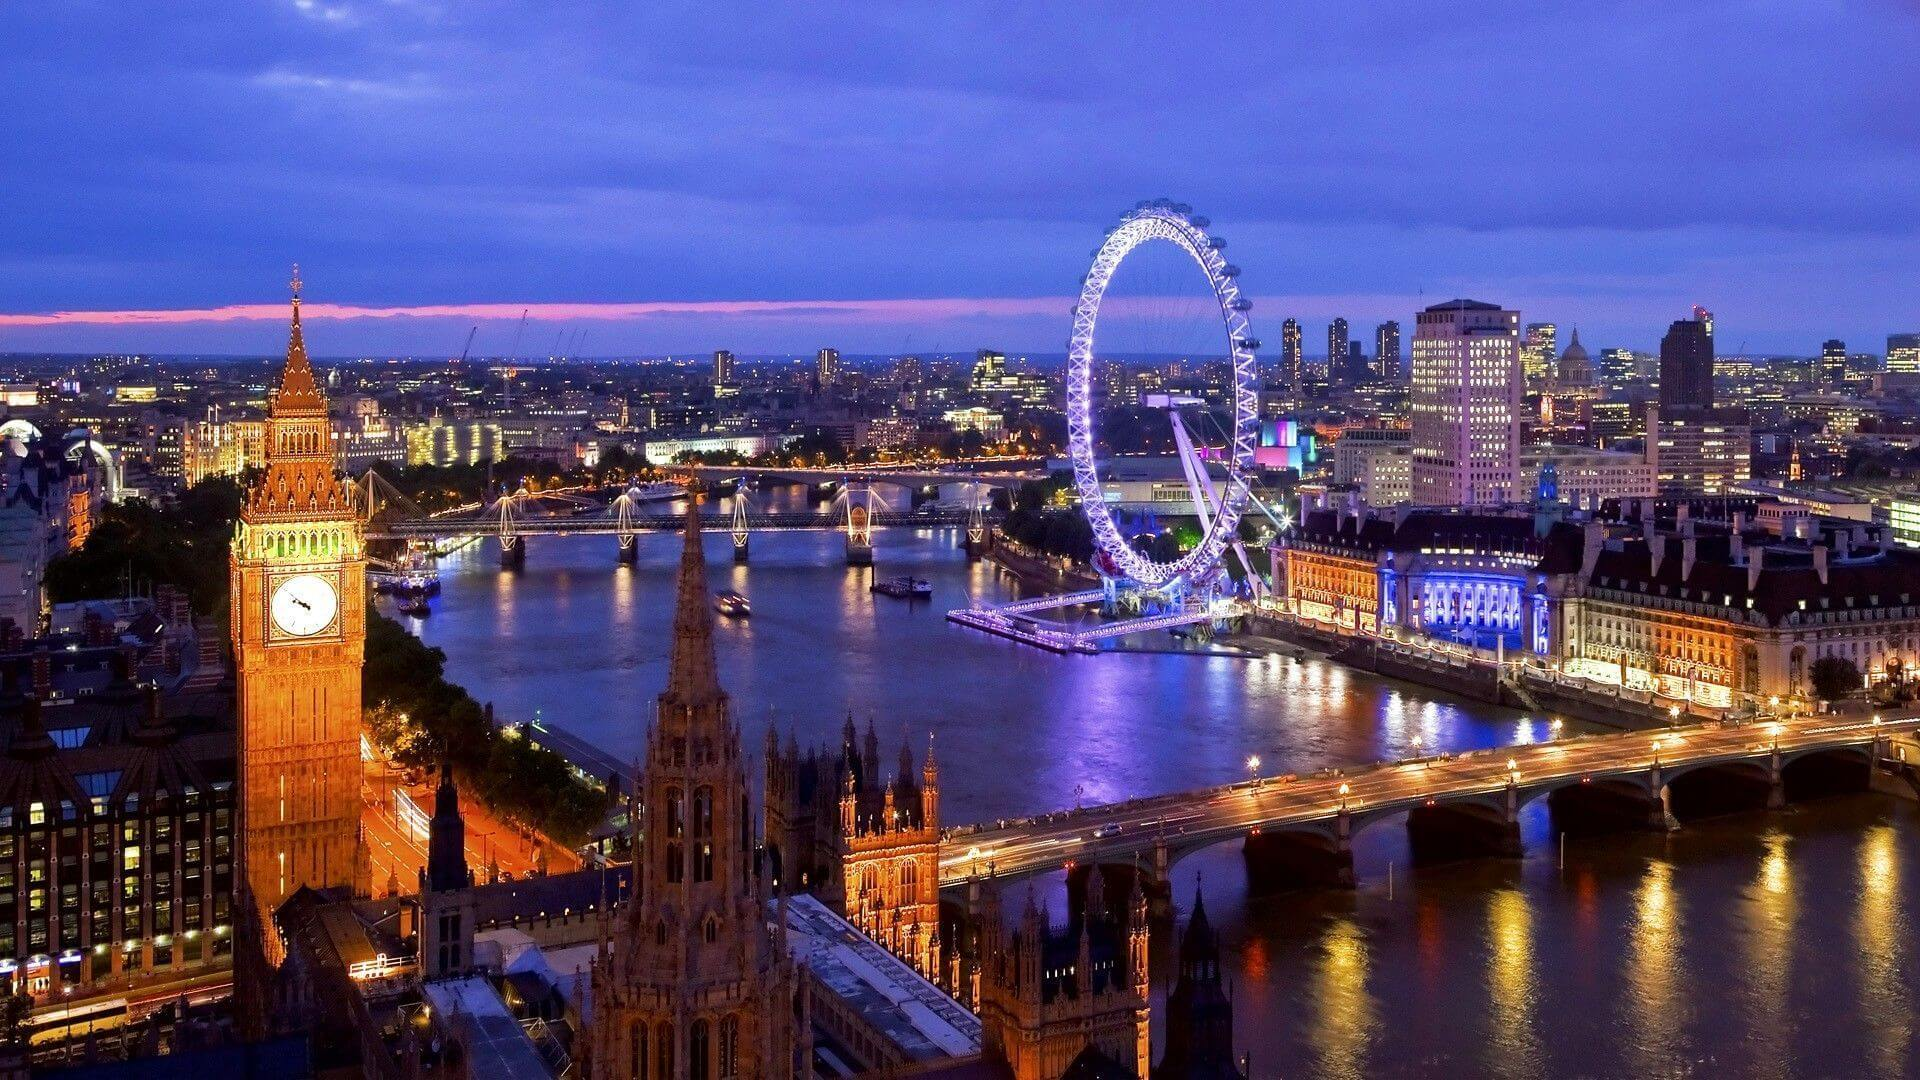 Honeymoon in UK-LONDON Holiday Travel & Tour Package